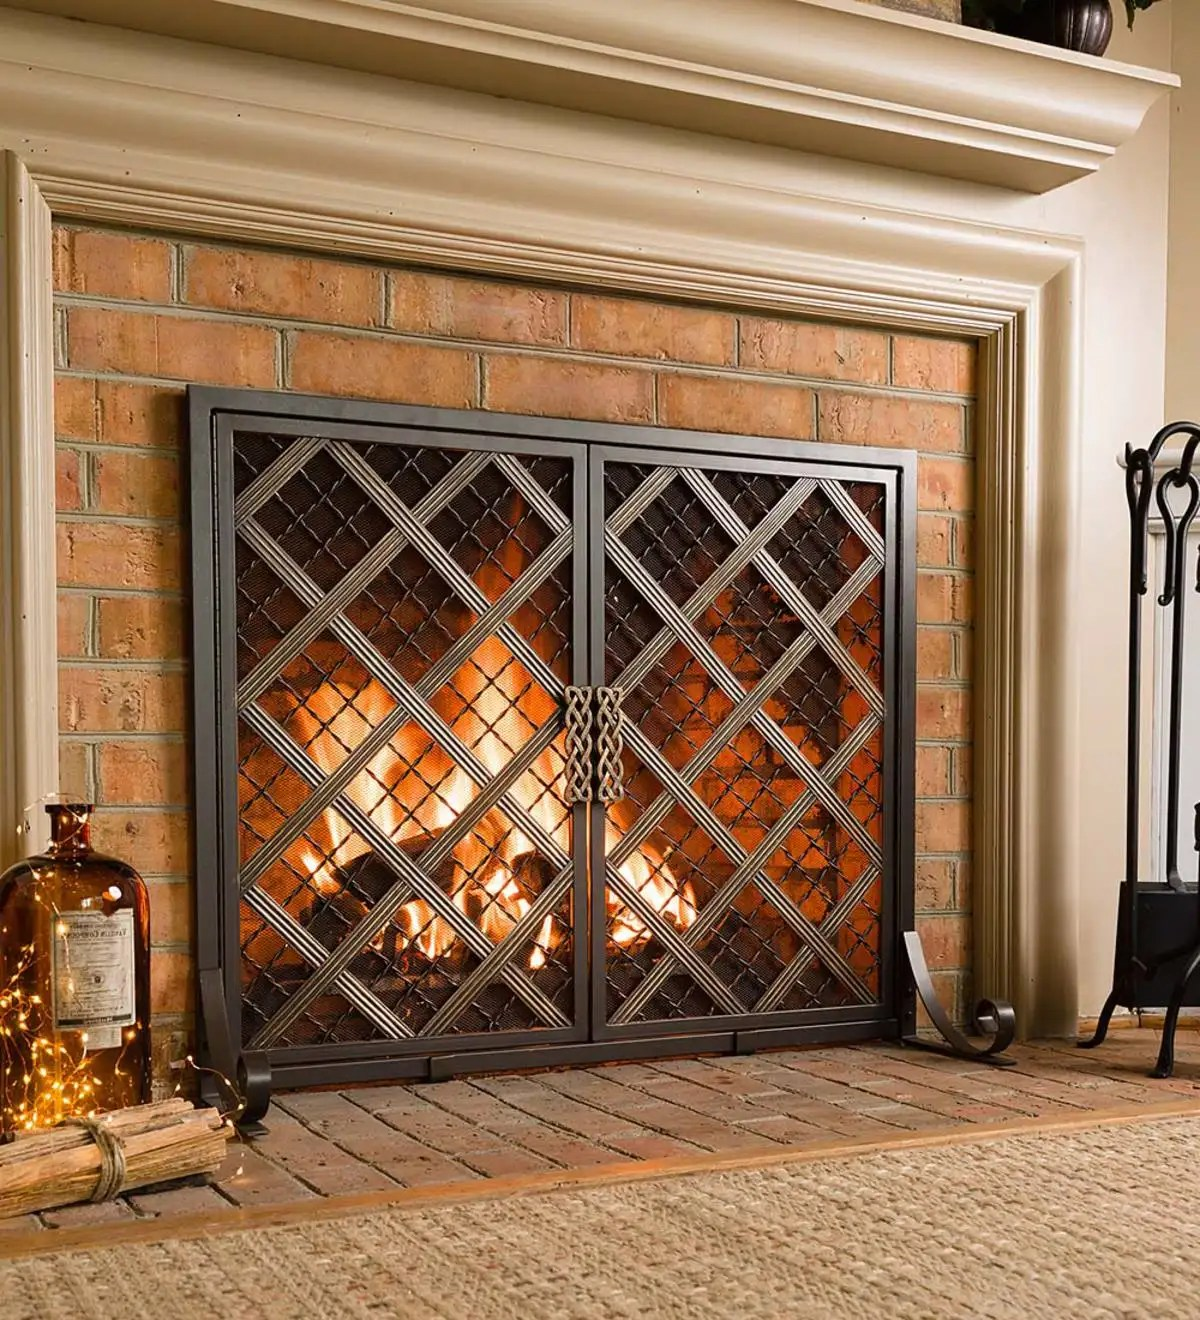 Small Fireplace Screens Under 30 Wide Mccormick Celtic Fireplace Screen